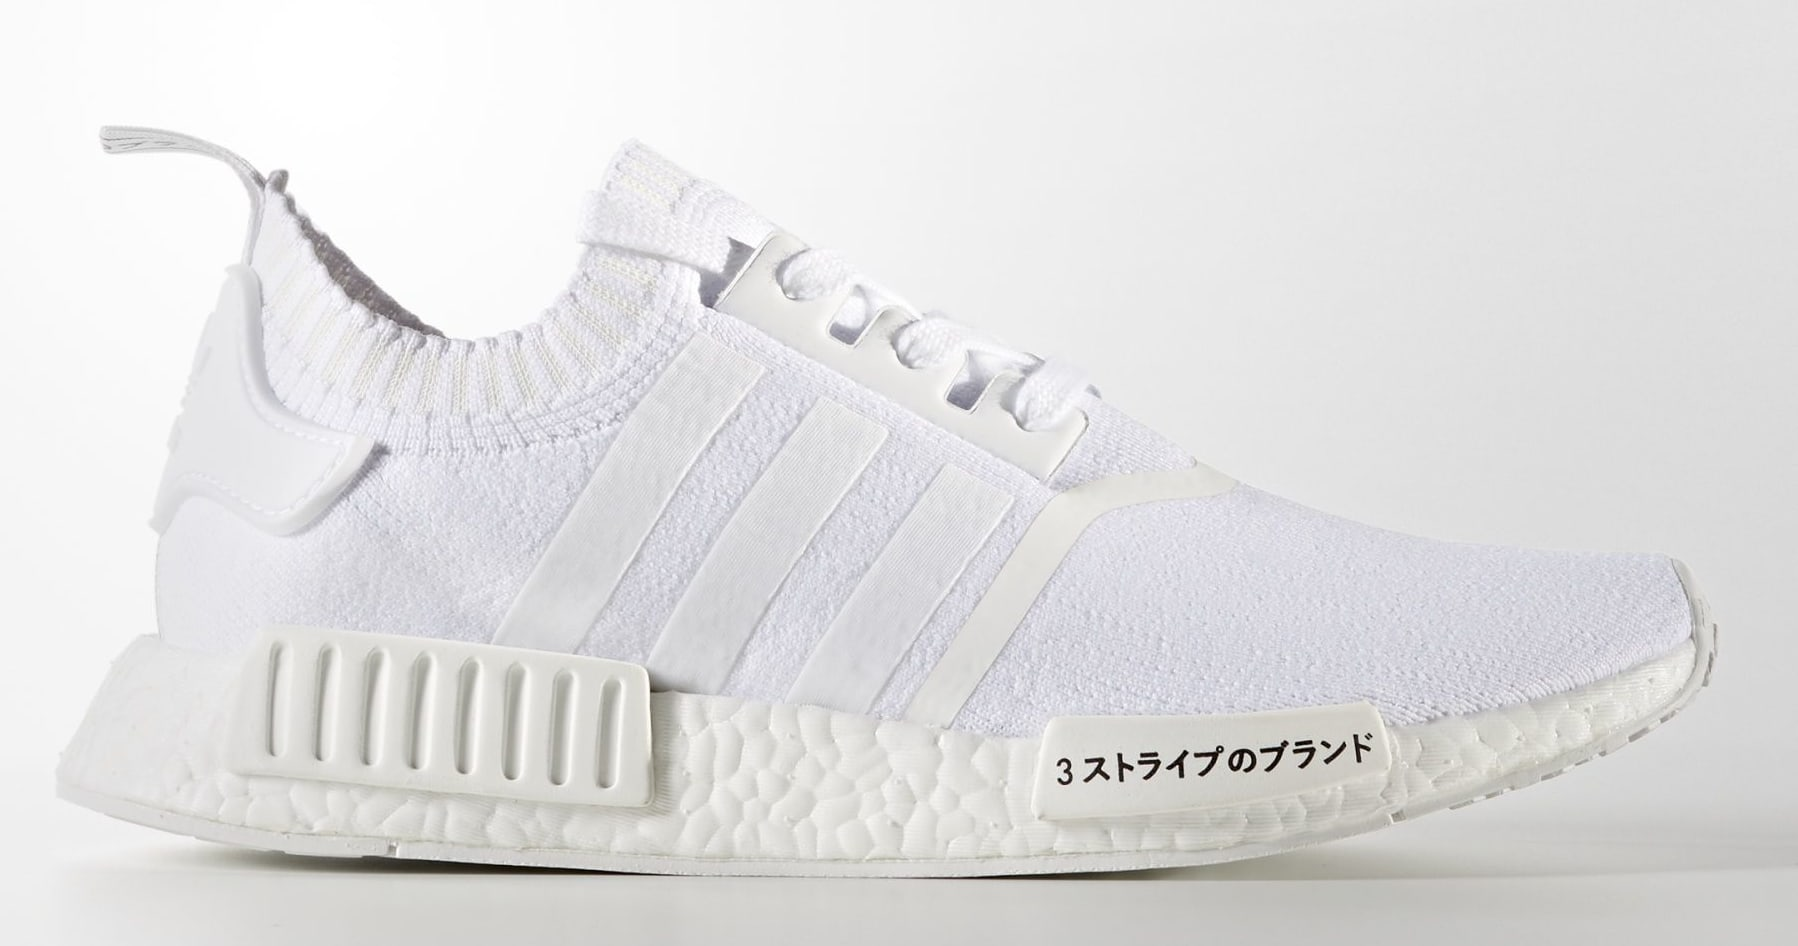 Adidas NMD_R1 PK 'Japan Pack' BZ0221 (Side)